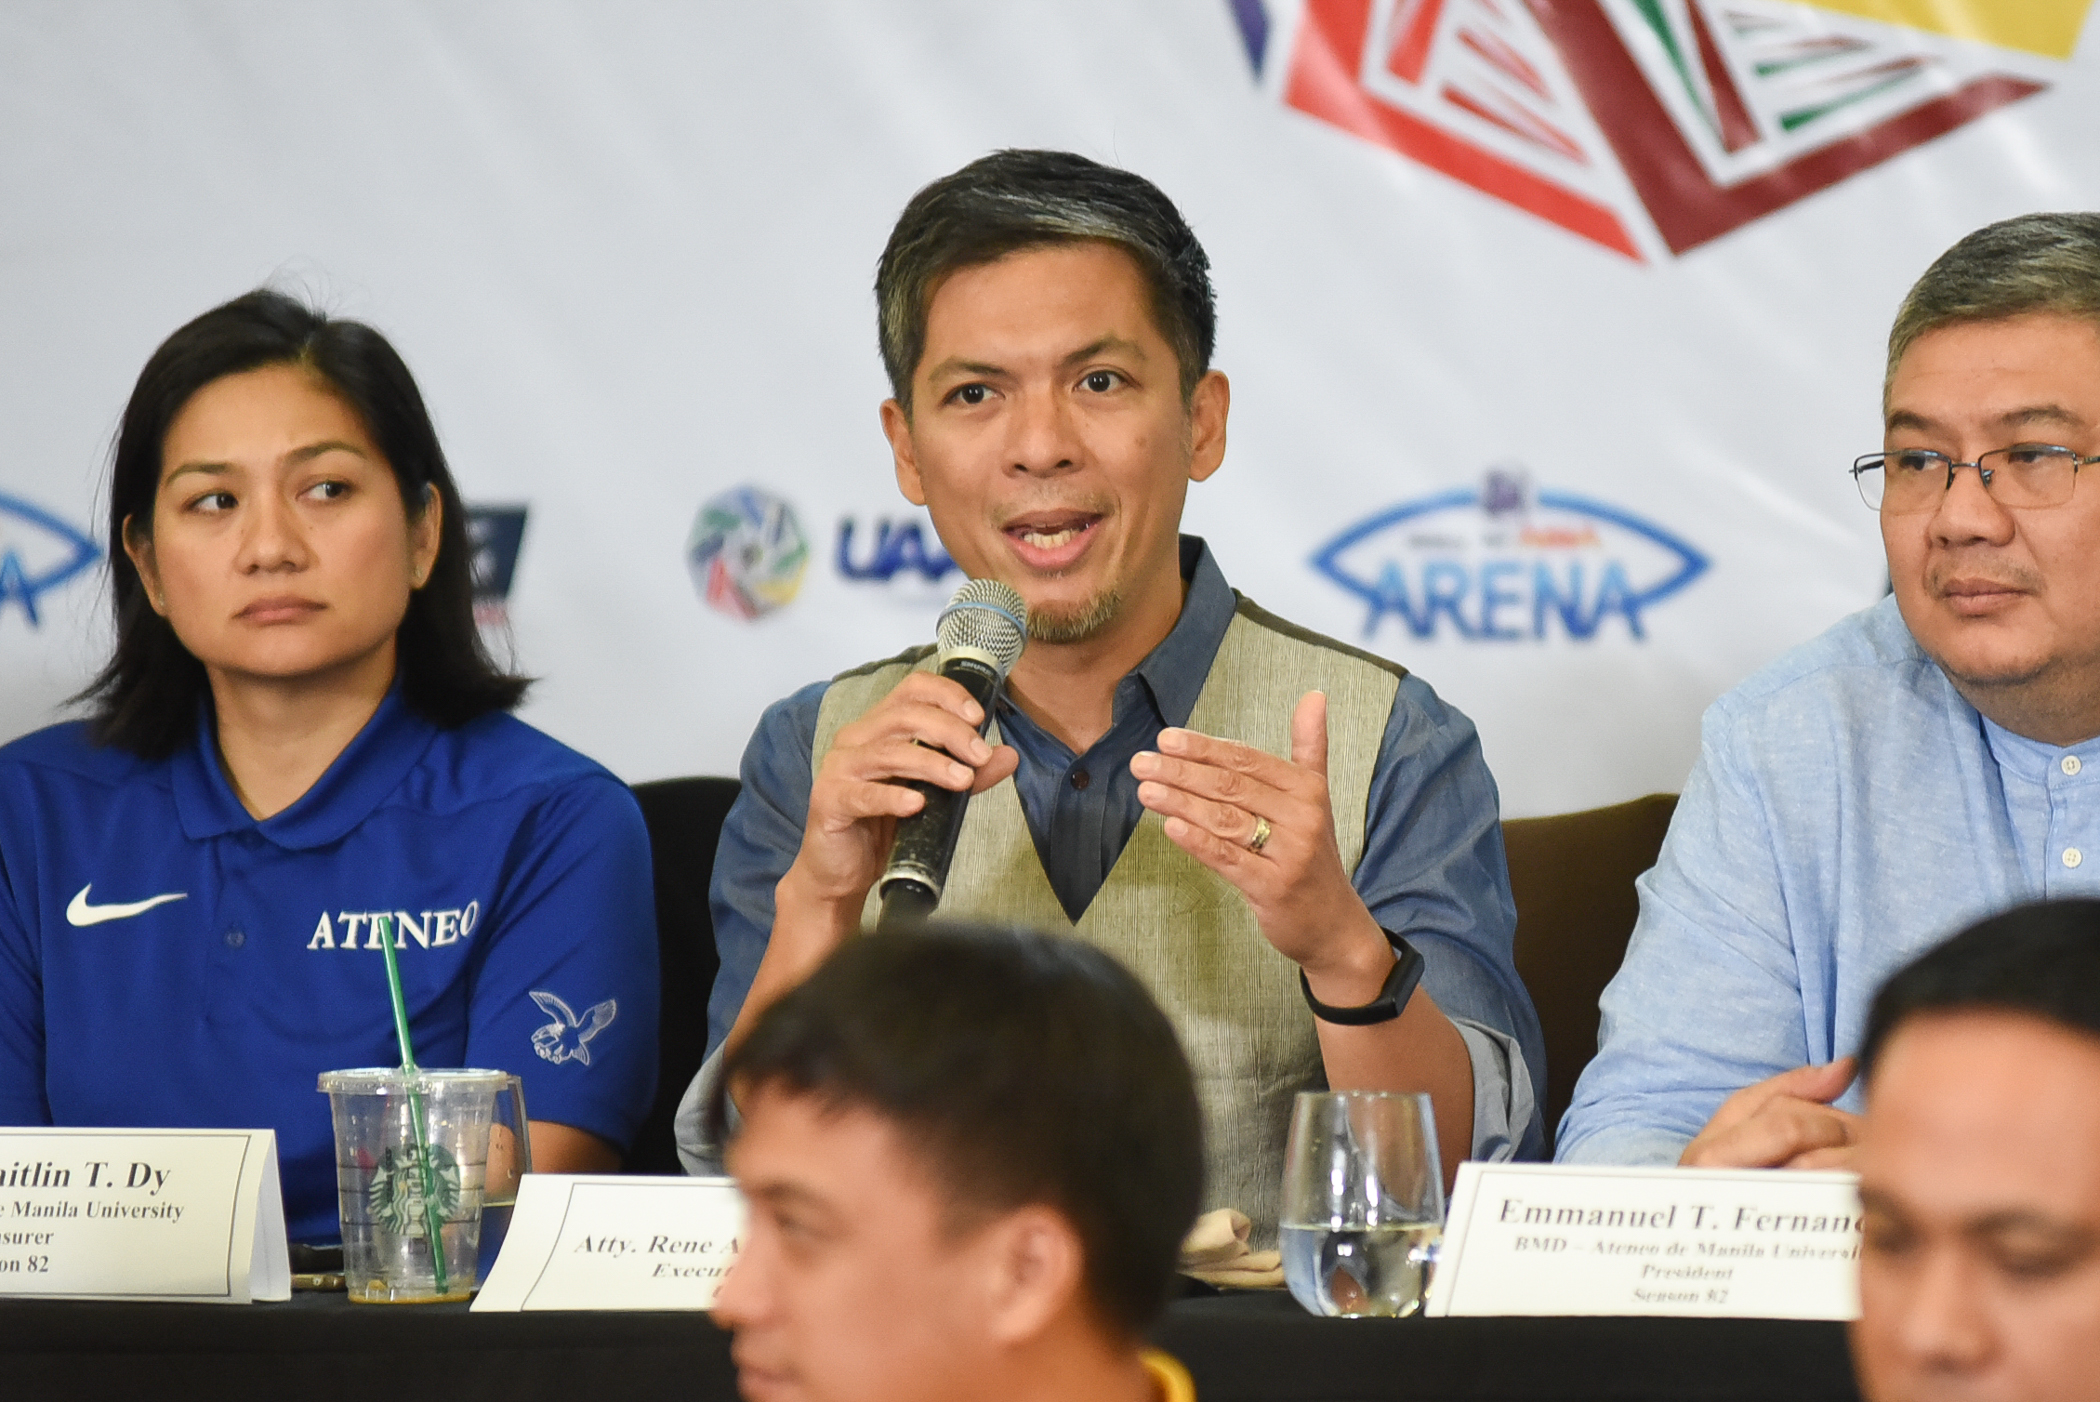 UAAP postpones all Season 82 events after Feb. 14